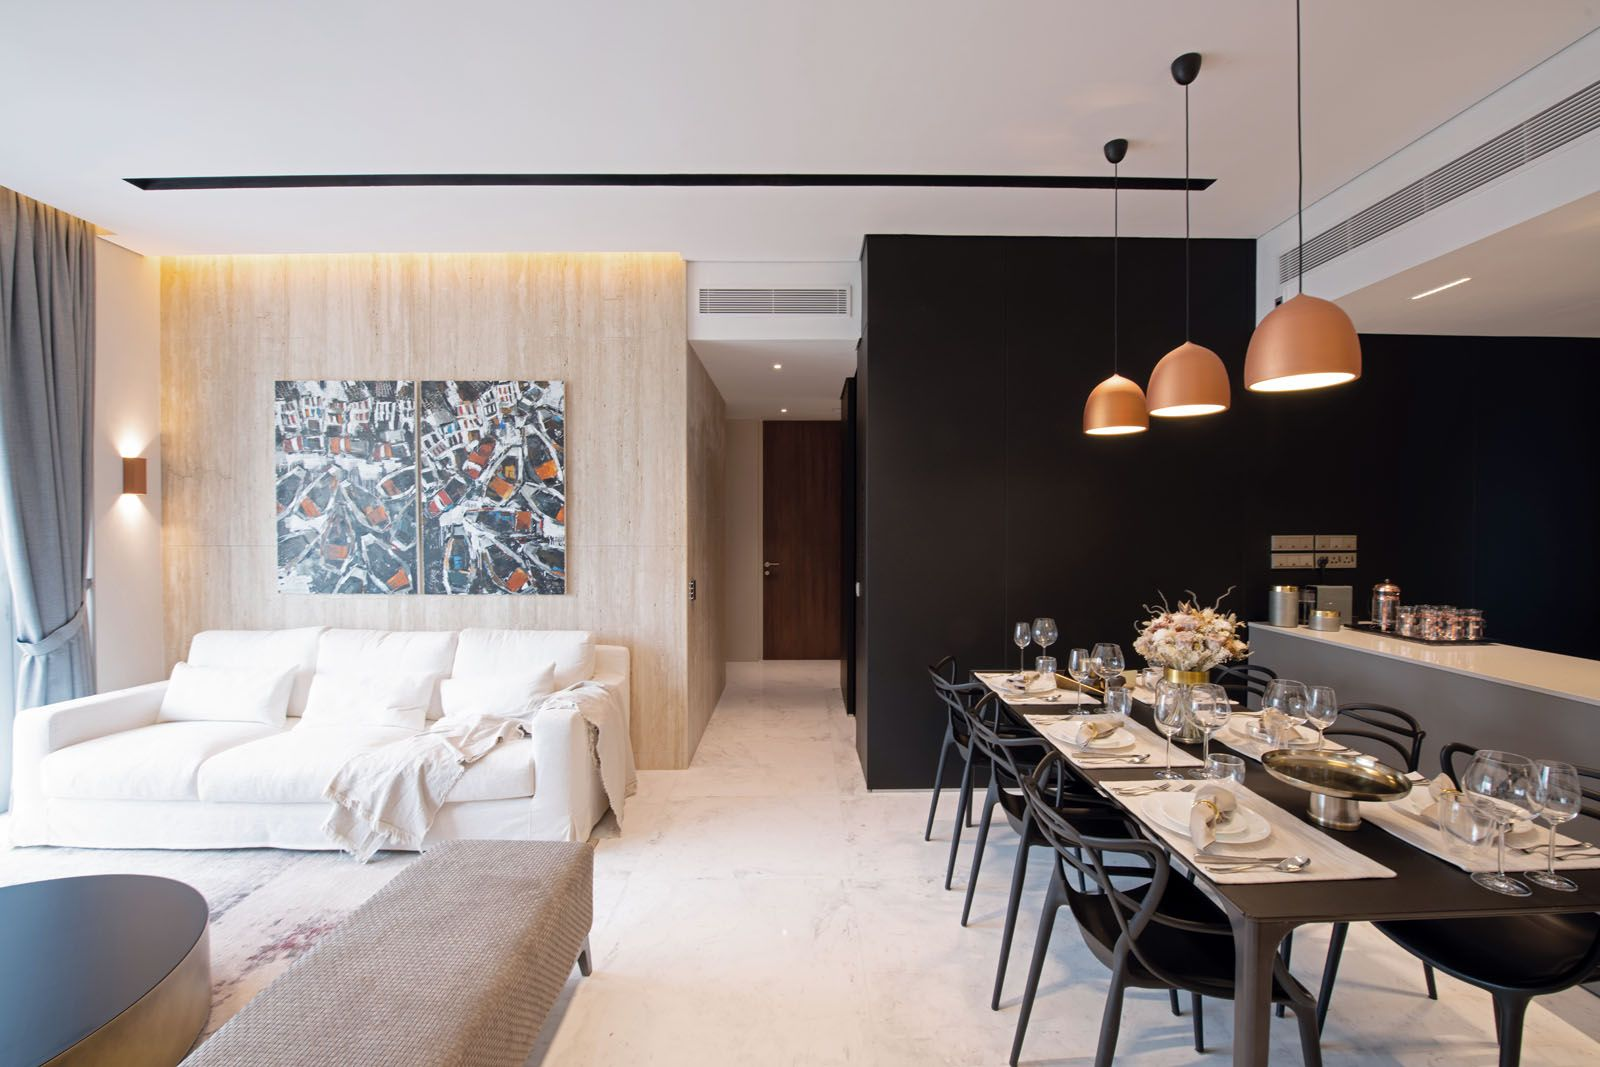 The earthy tones of the travertine wall are juxtaposed against the sleek black laminate wall that wraps around the kitchen, dining area and hallway